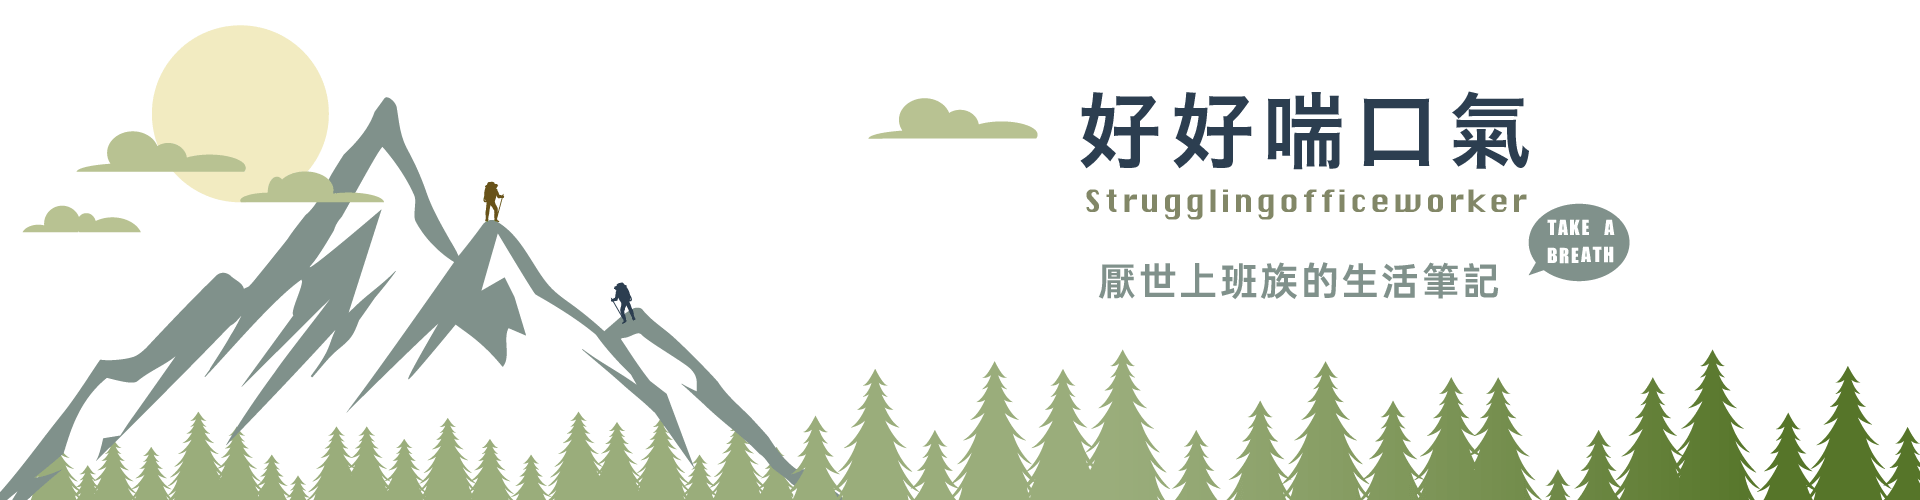 好好喘口氣 Strugglingofficeworker